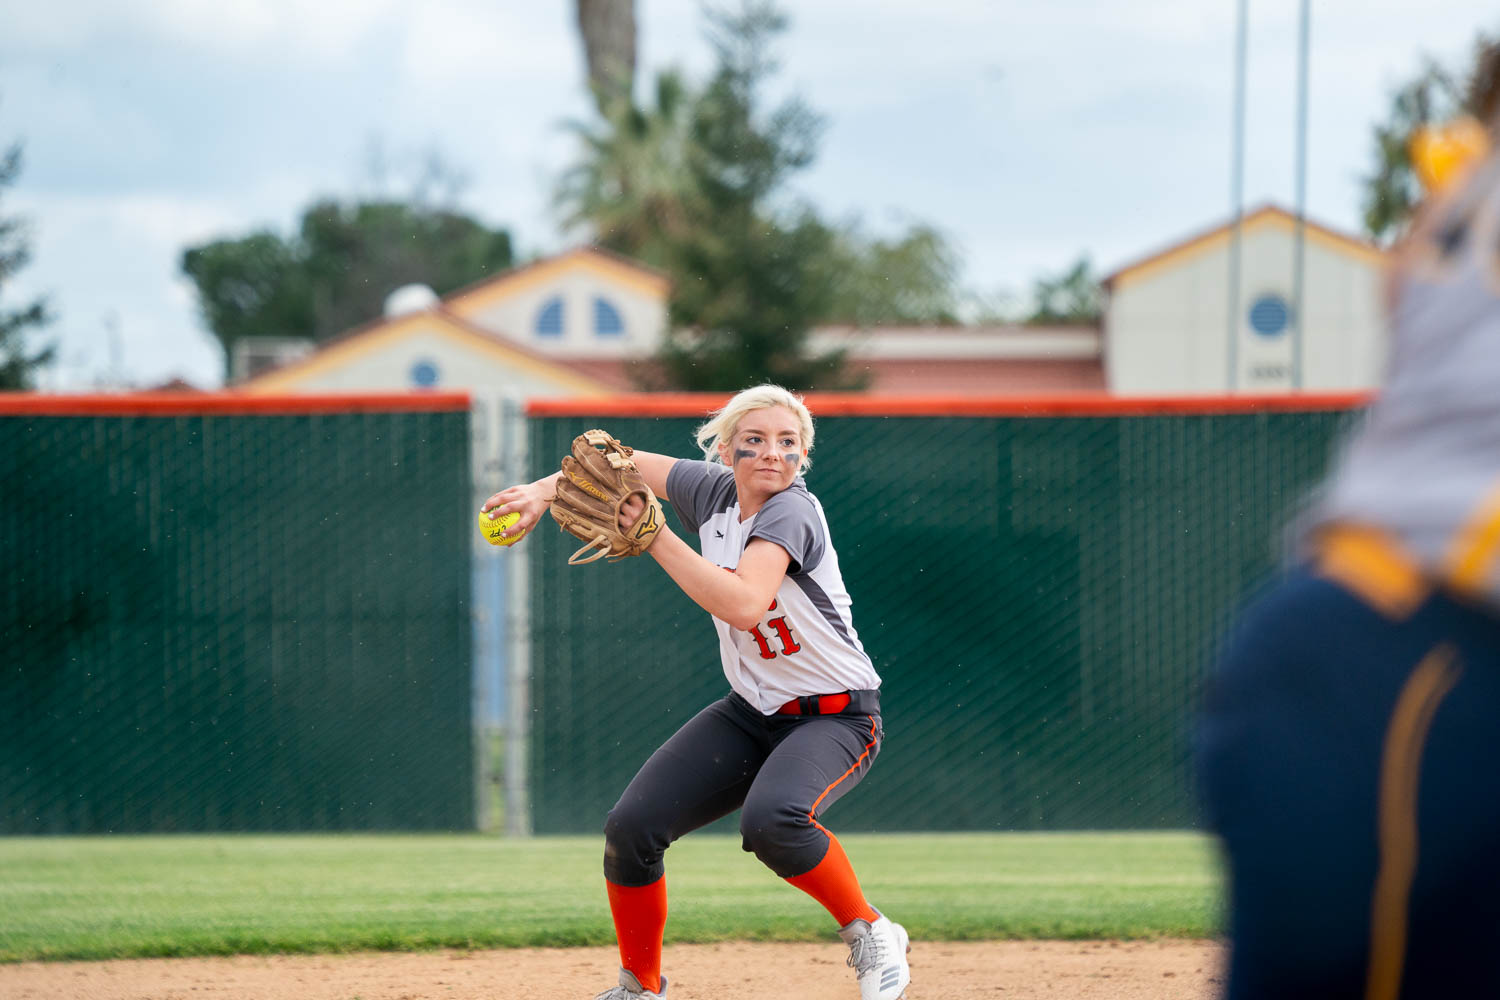 20190327_SoftballVAR_Shafter_085.jpg